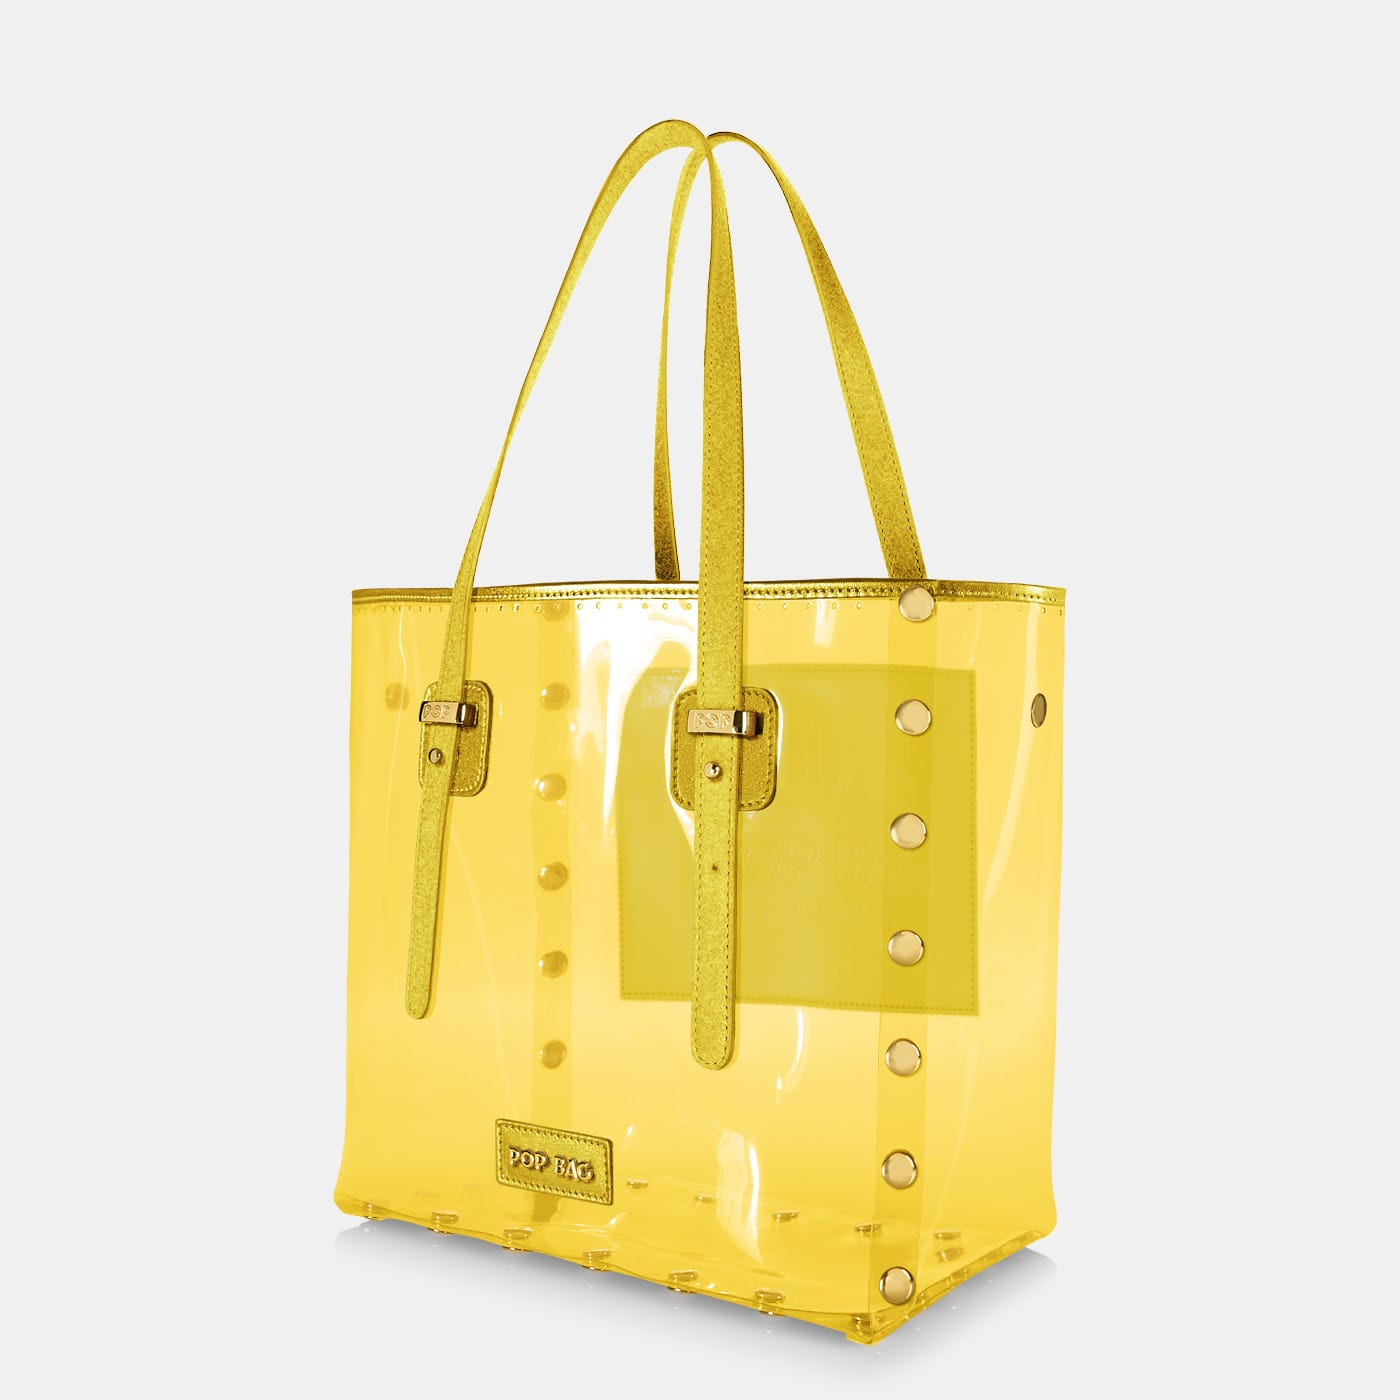 Pop Crystal Bag - Yellow - Large - Side View